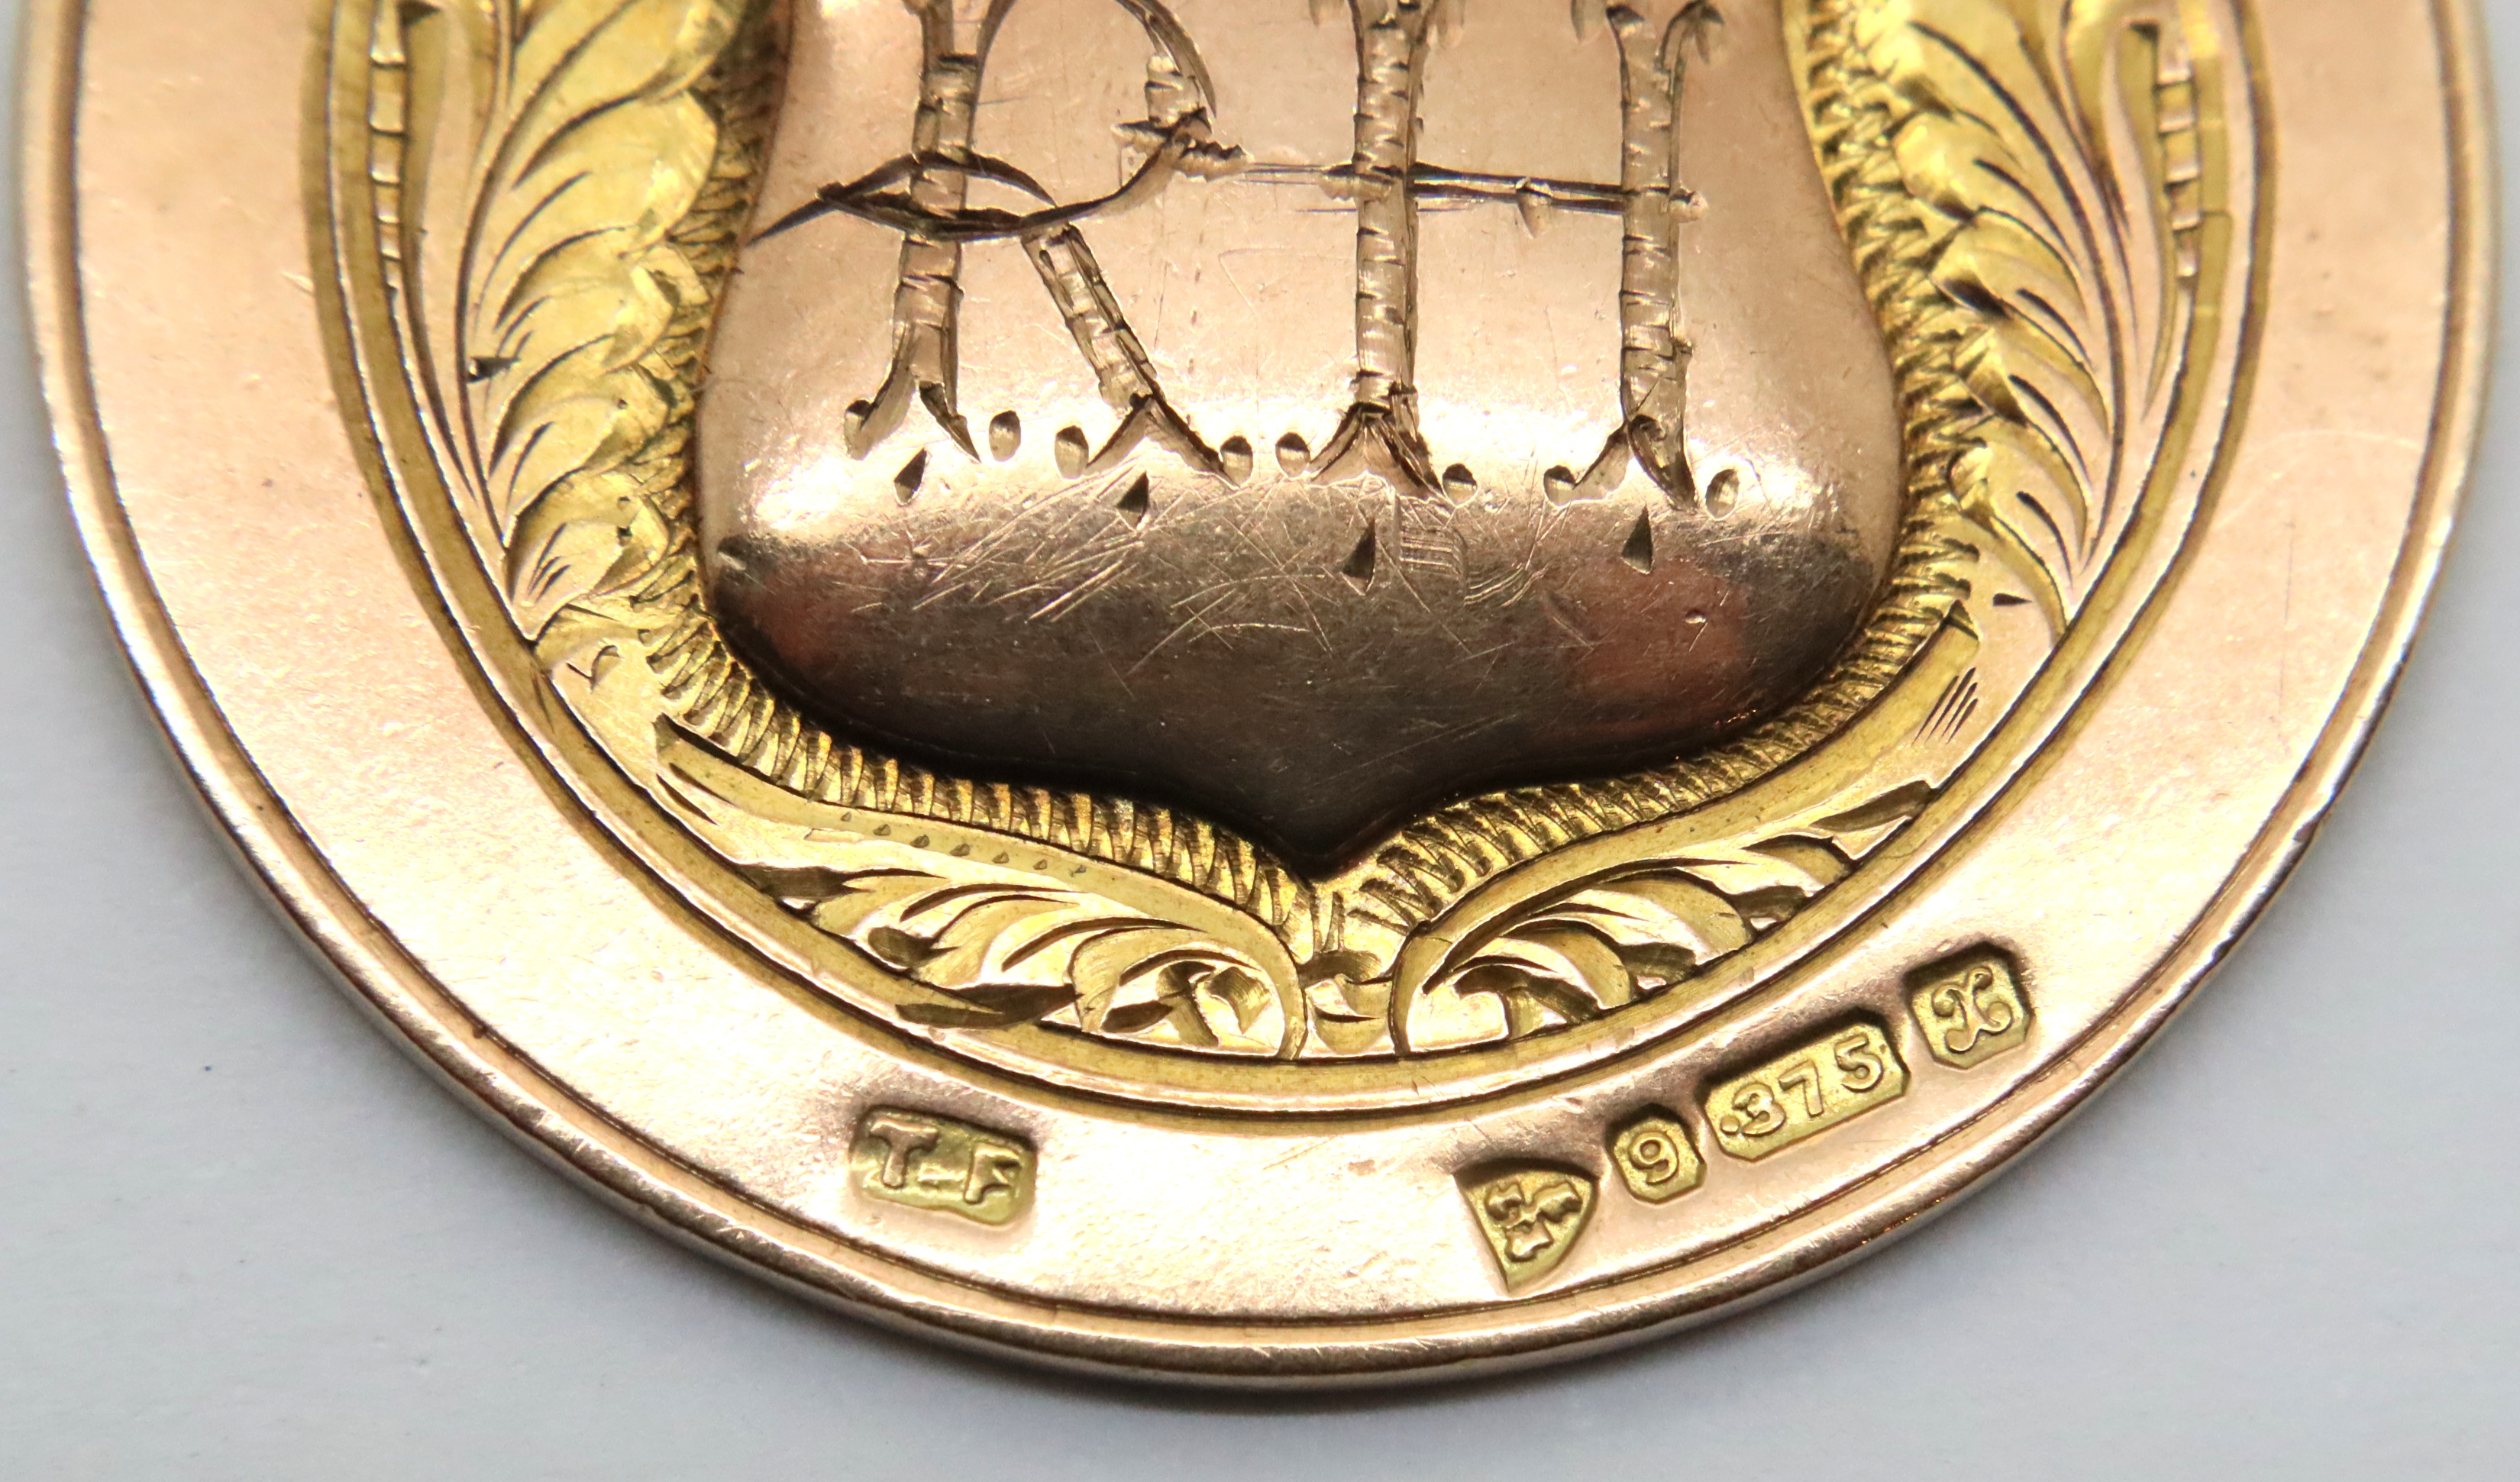 Antique 1923 Chester 9ct rose gold and enamel fishing medal/pocket watch fob by Thomas Fattorini, - Image 3 of 3